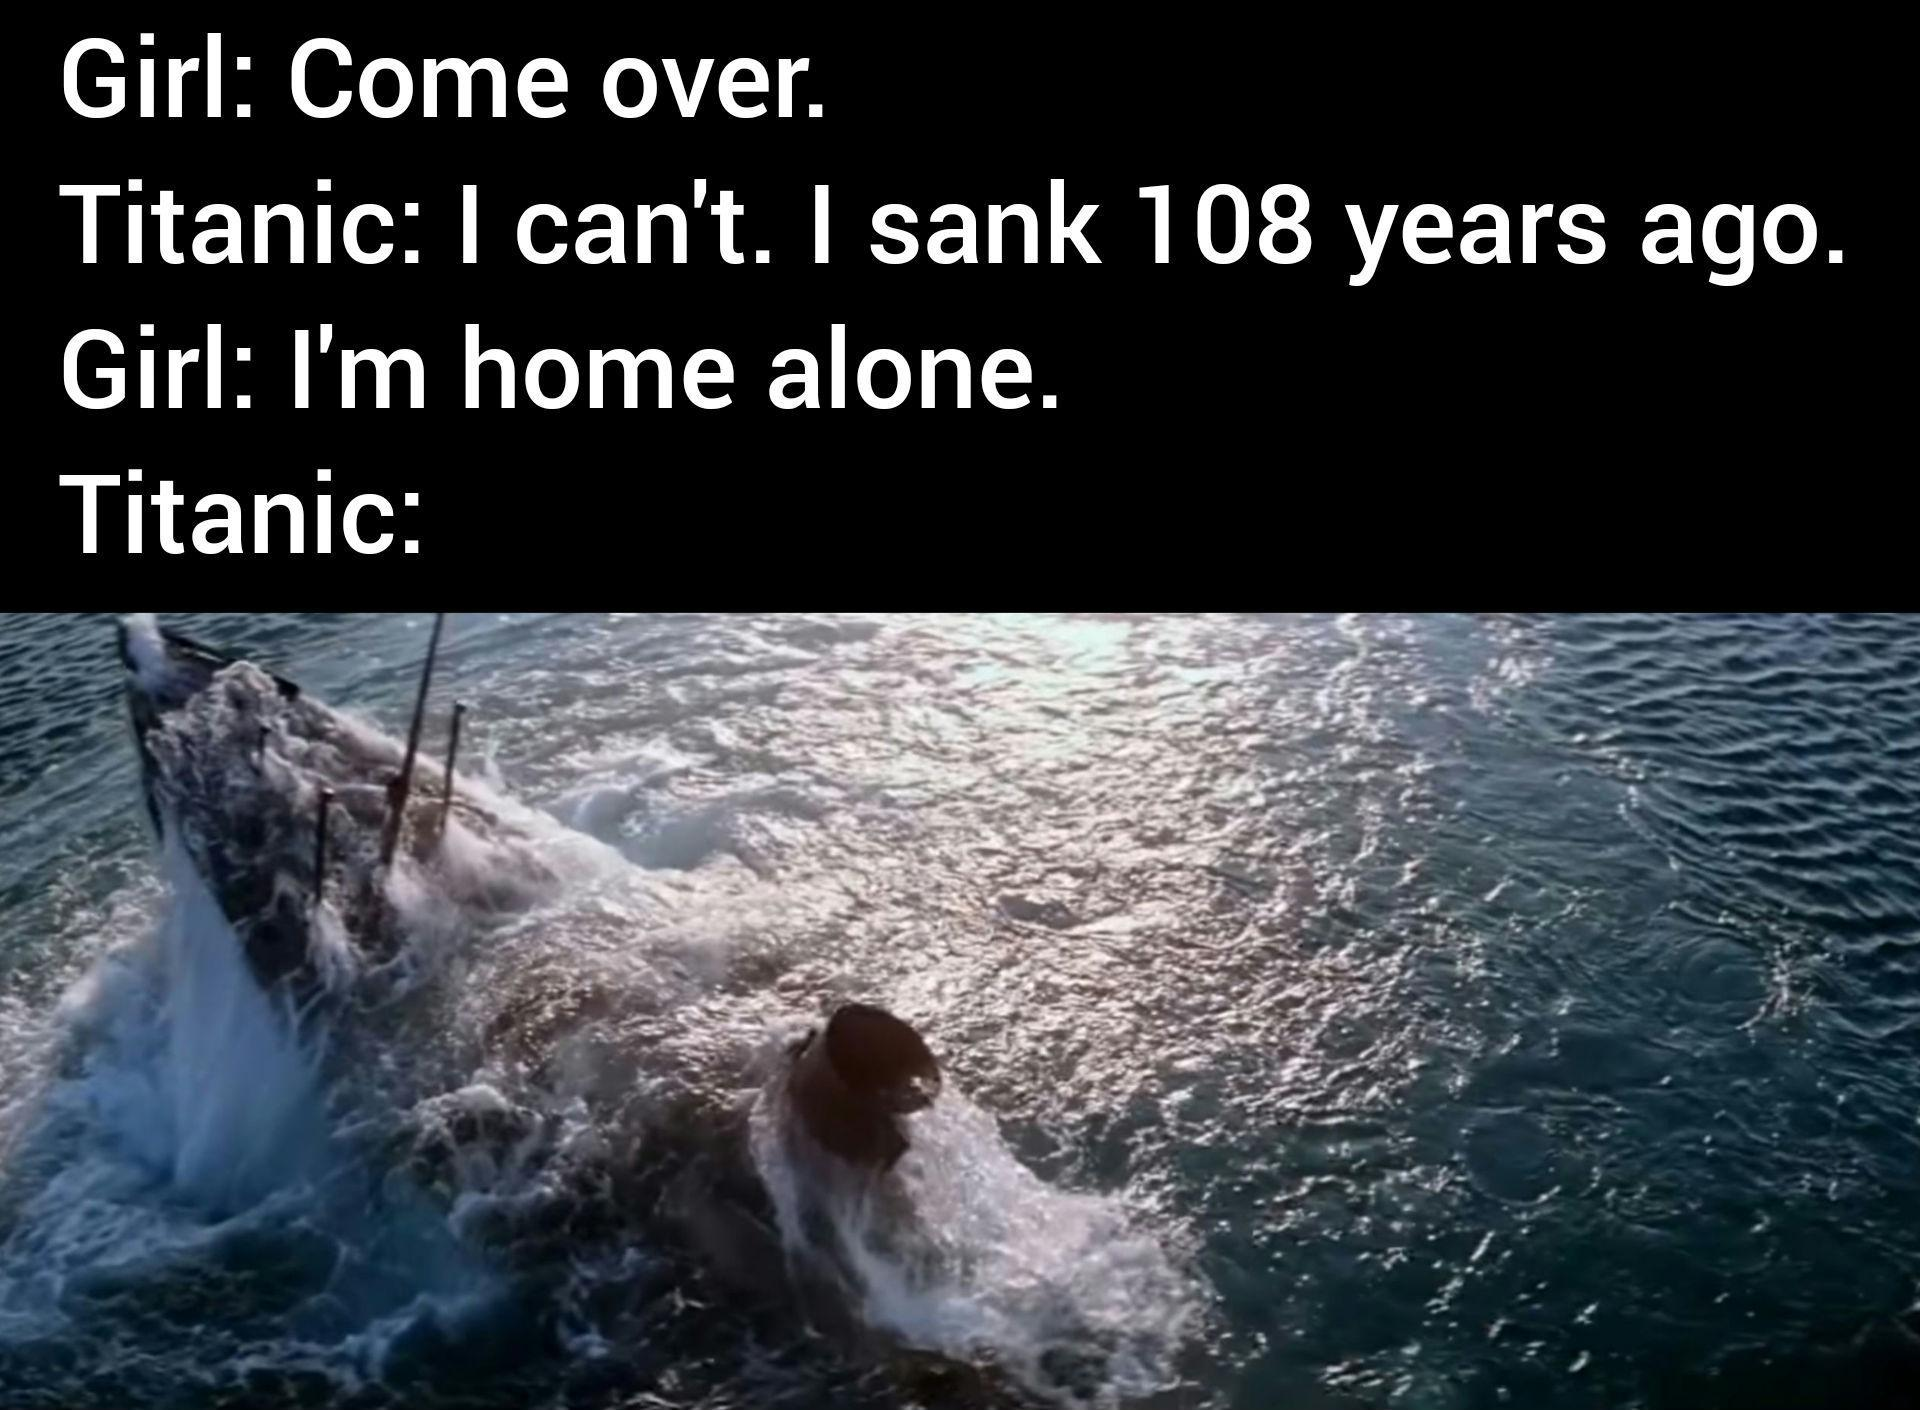 Titanic II: Why am I hearing boss music? - meme